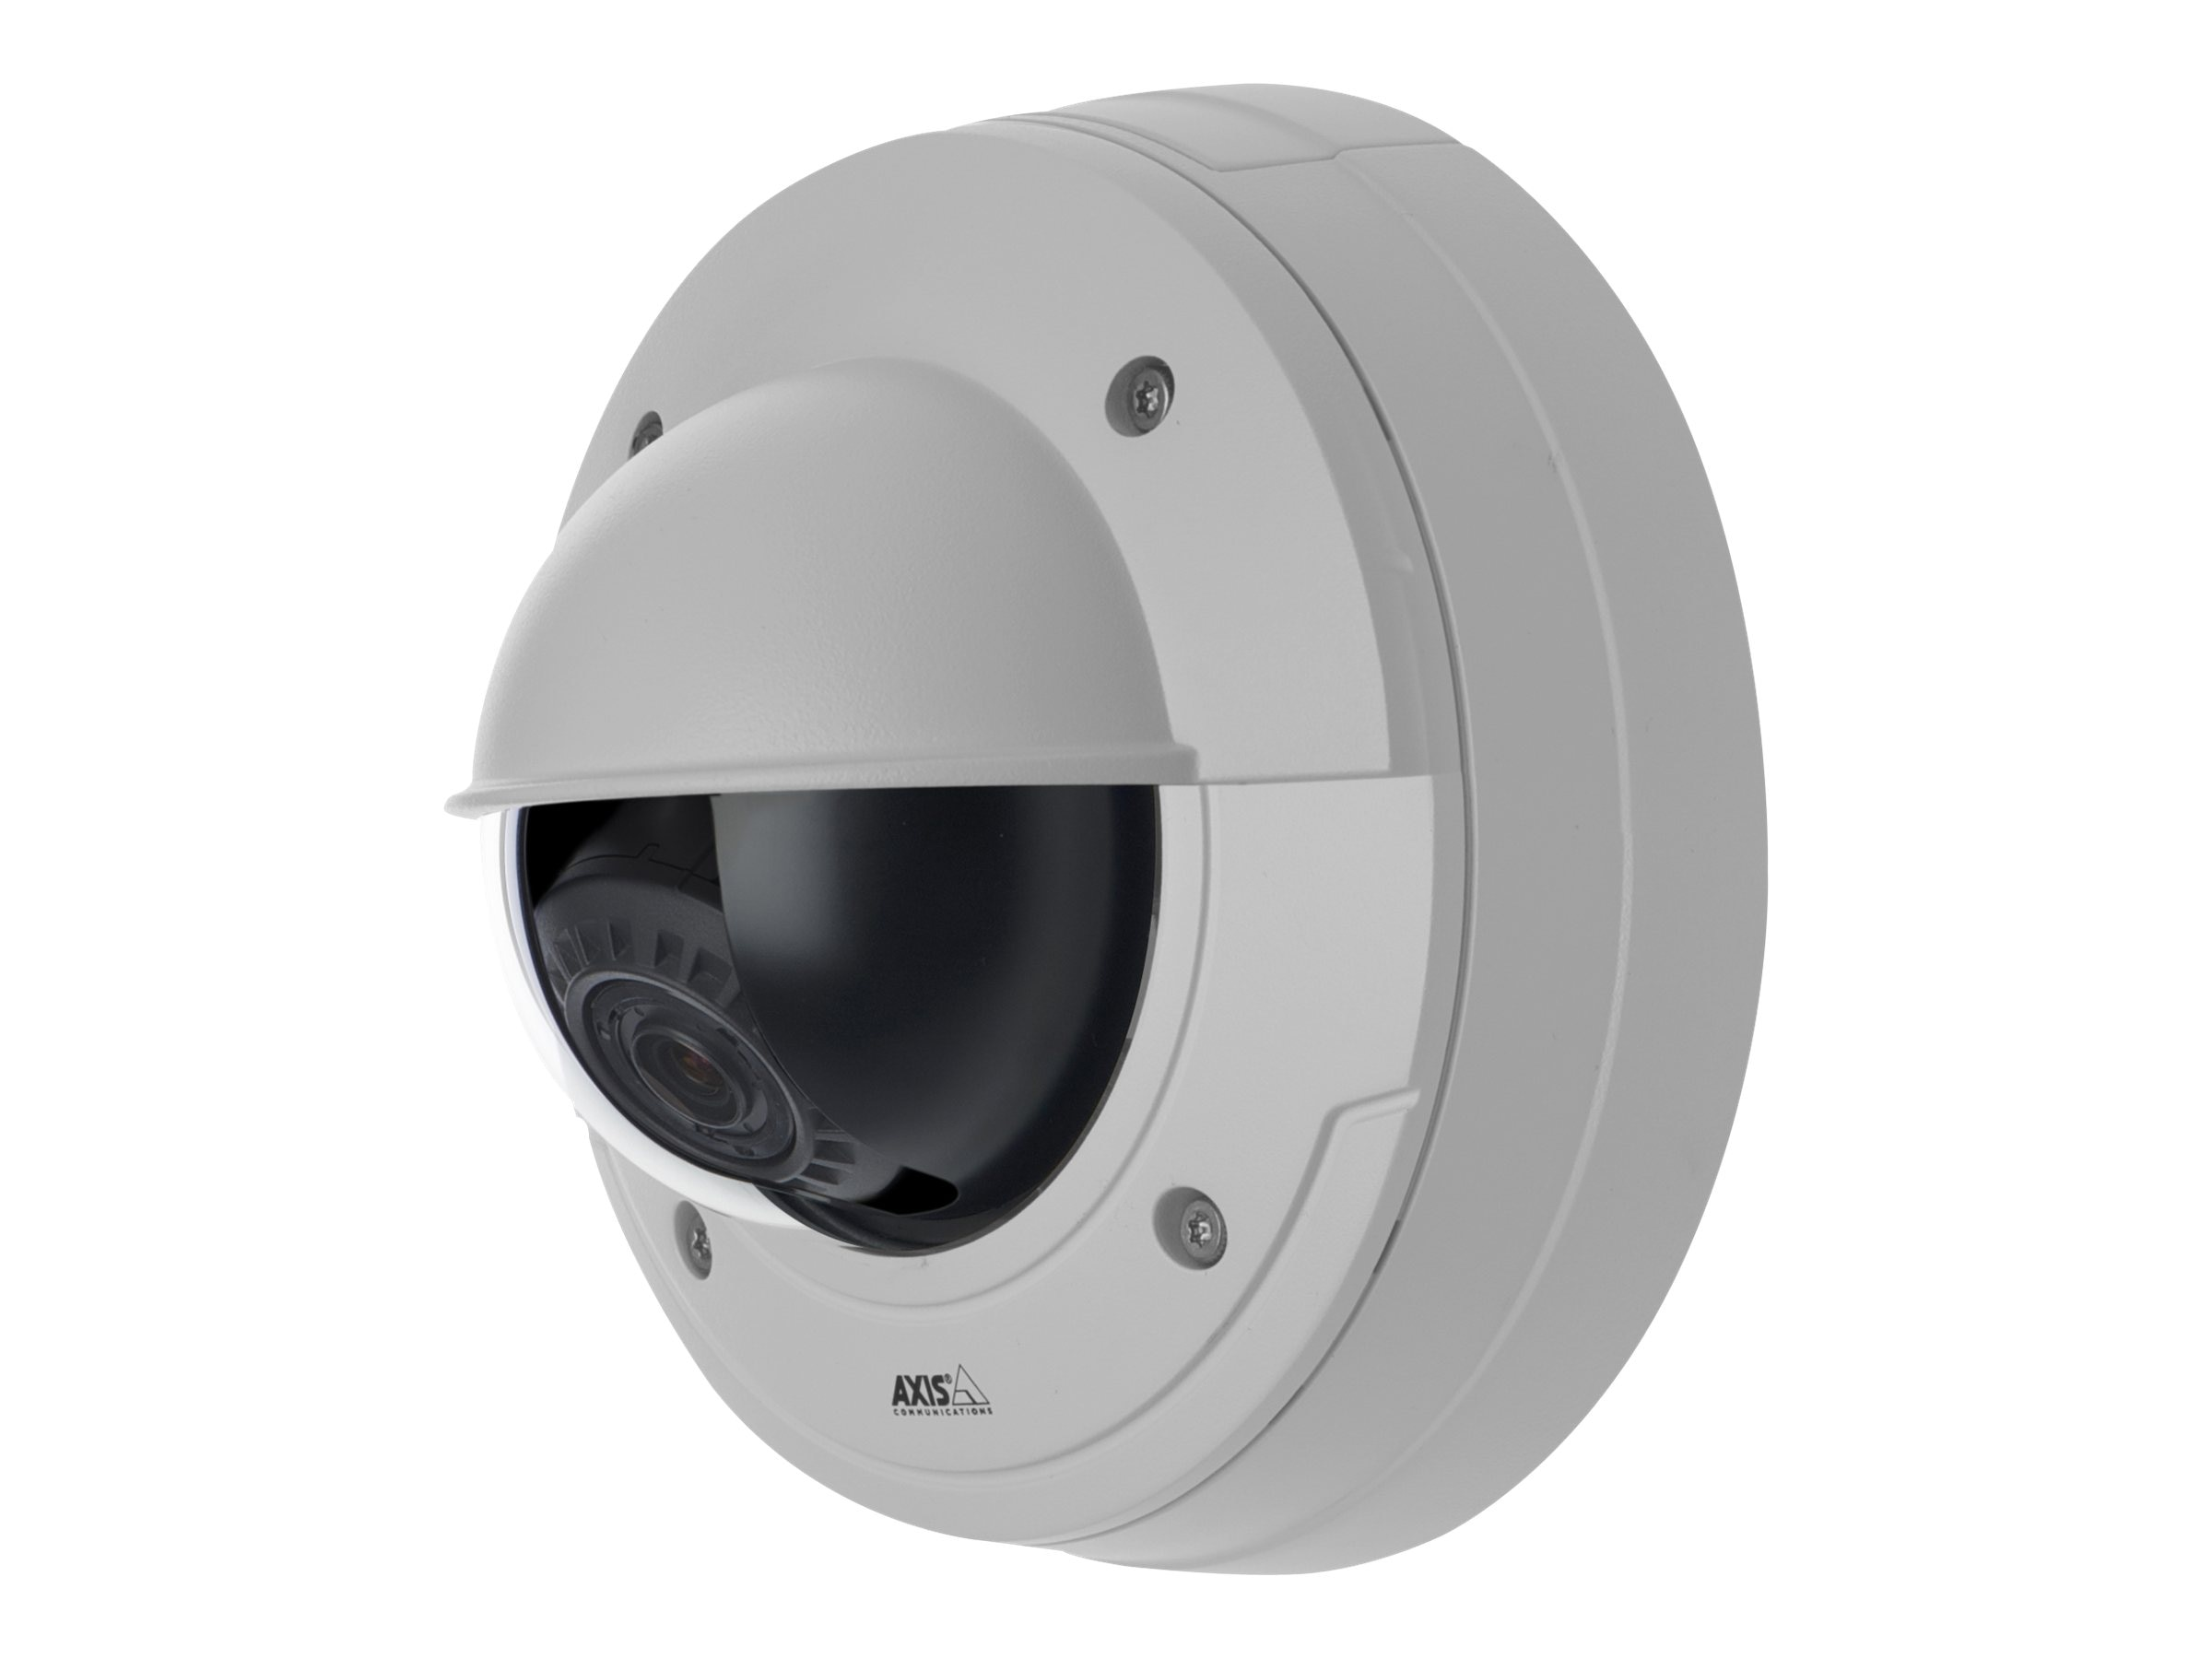 Axis P3364-LVE 12mm Network Camera, Vandal-Proof, Outdoor, 0473-001, 15121294, Cameras - Security